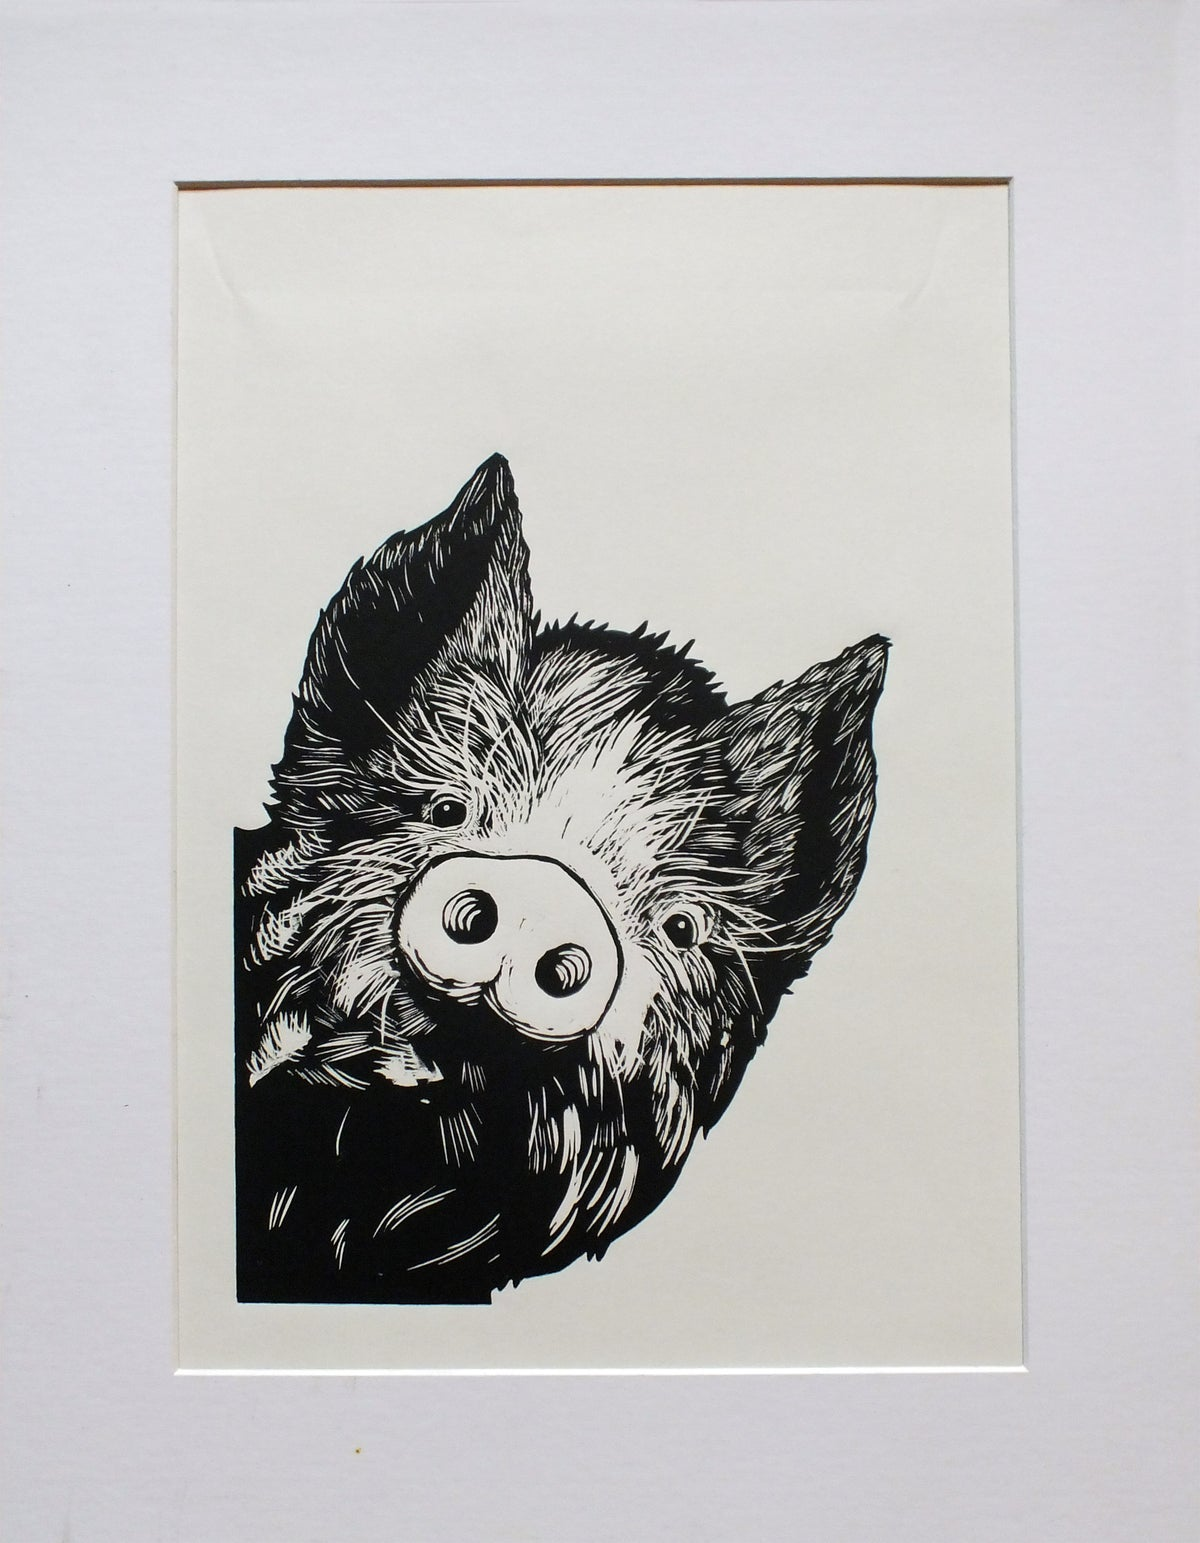 Image of 'Curious Pig' linocut, limited edition